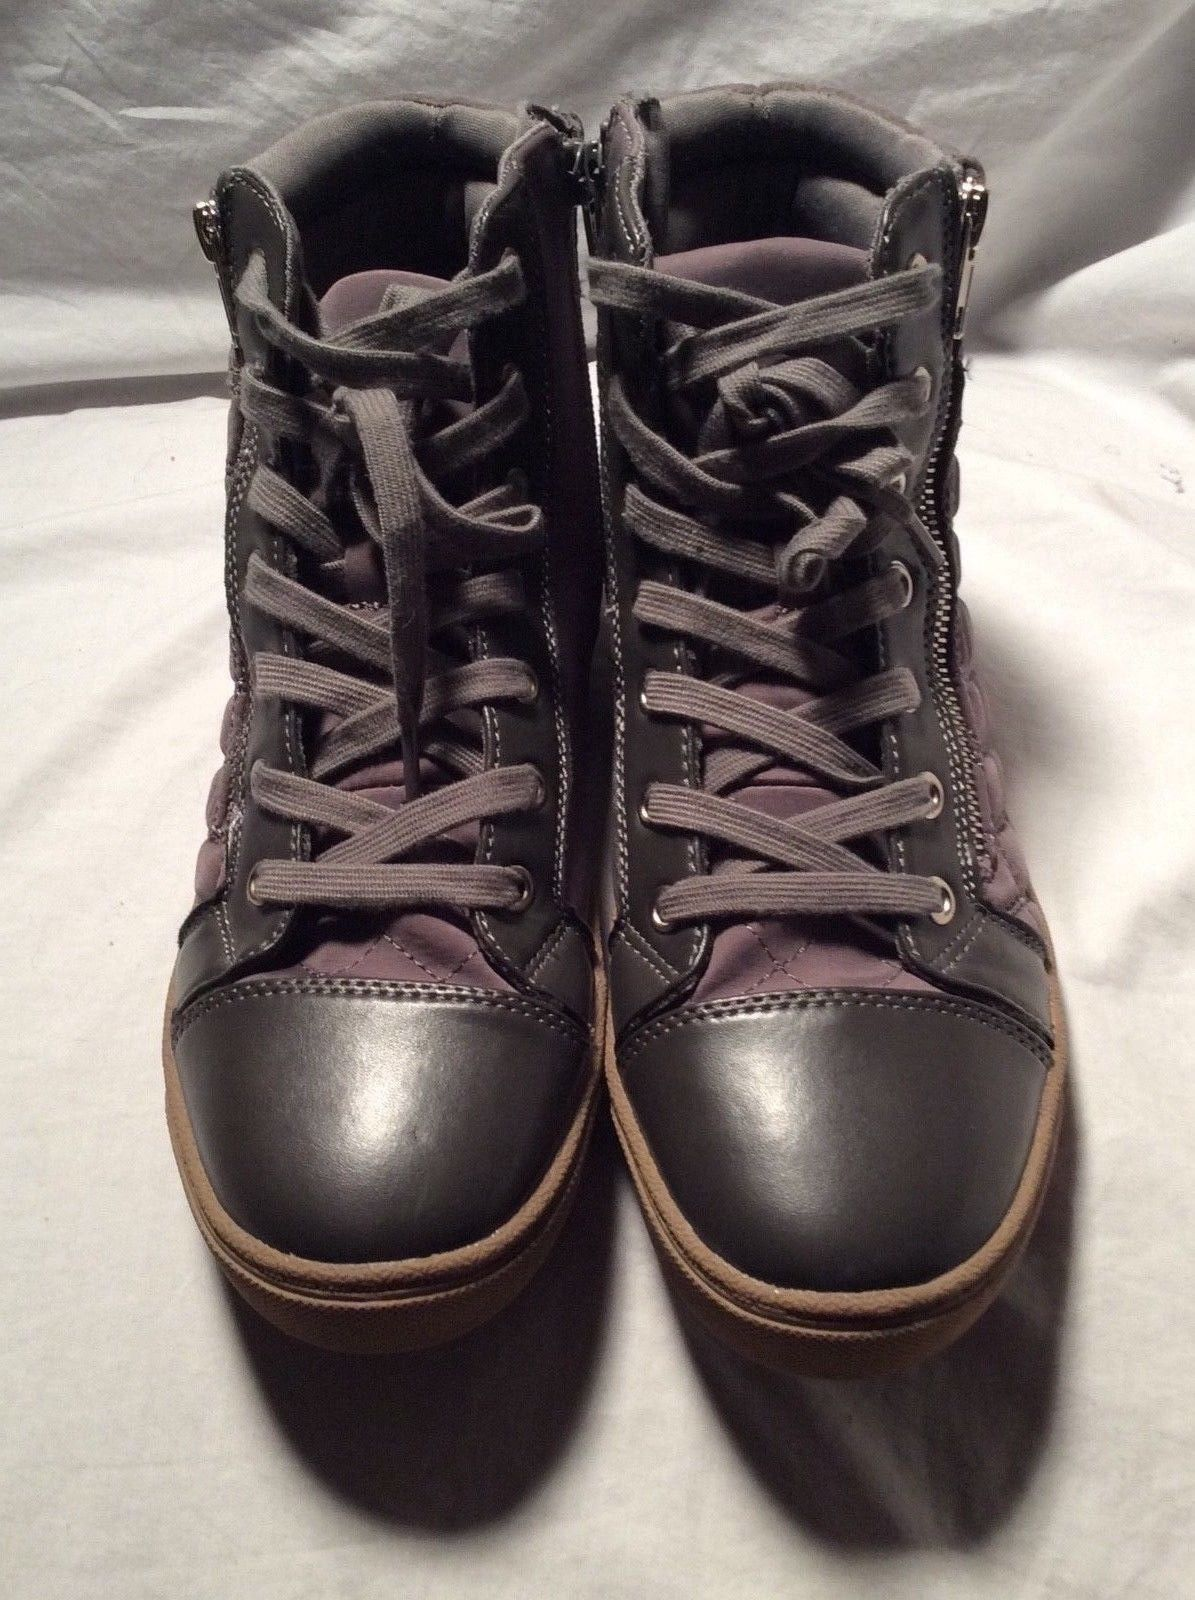 b7def639c32eea Juicy Couture Quilted high Top sneakers and 50 similar items. S l1600